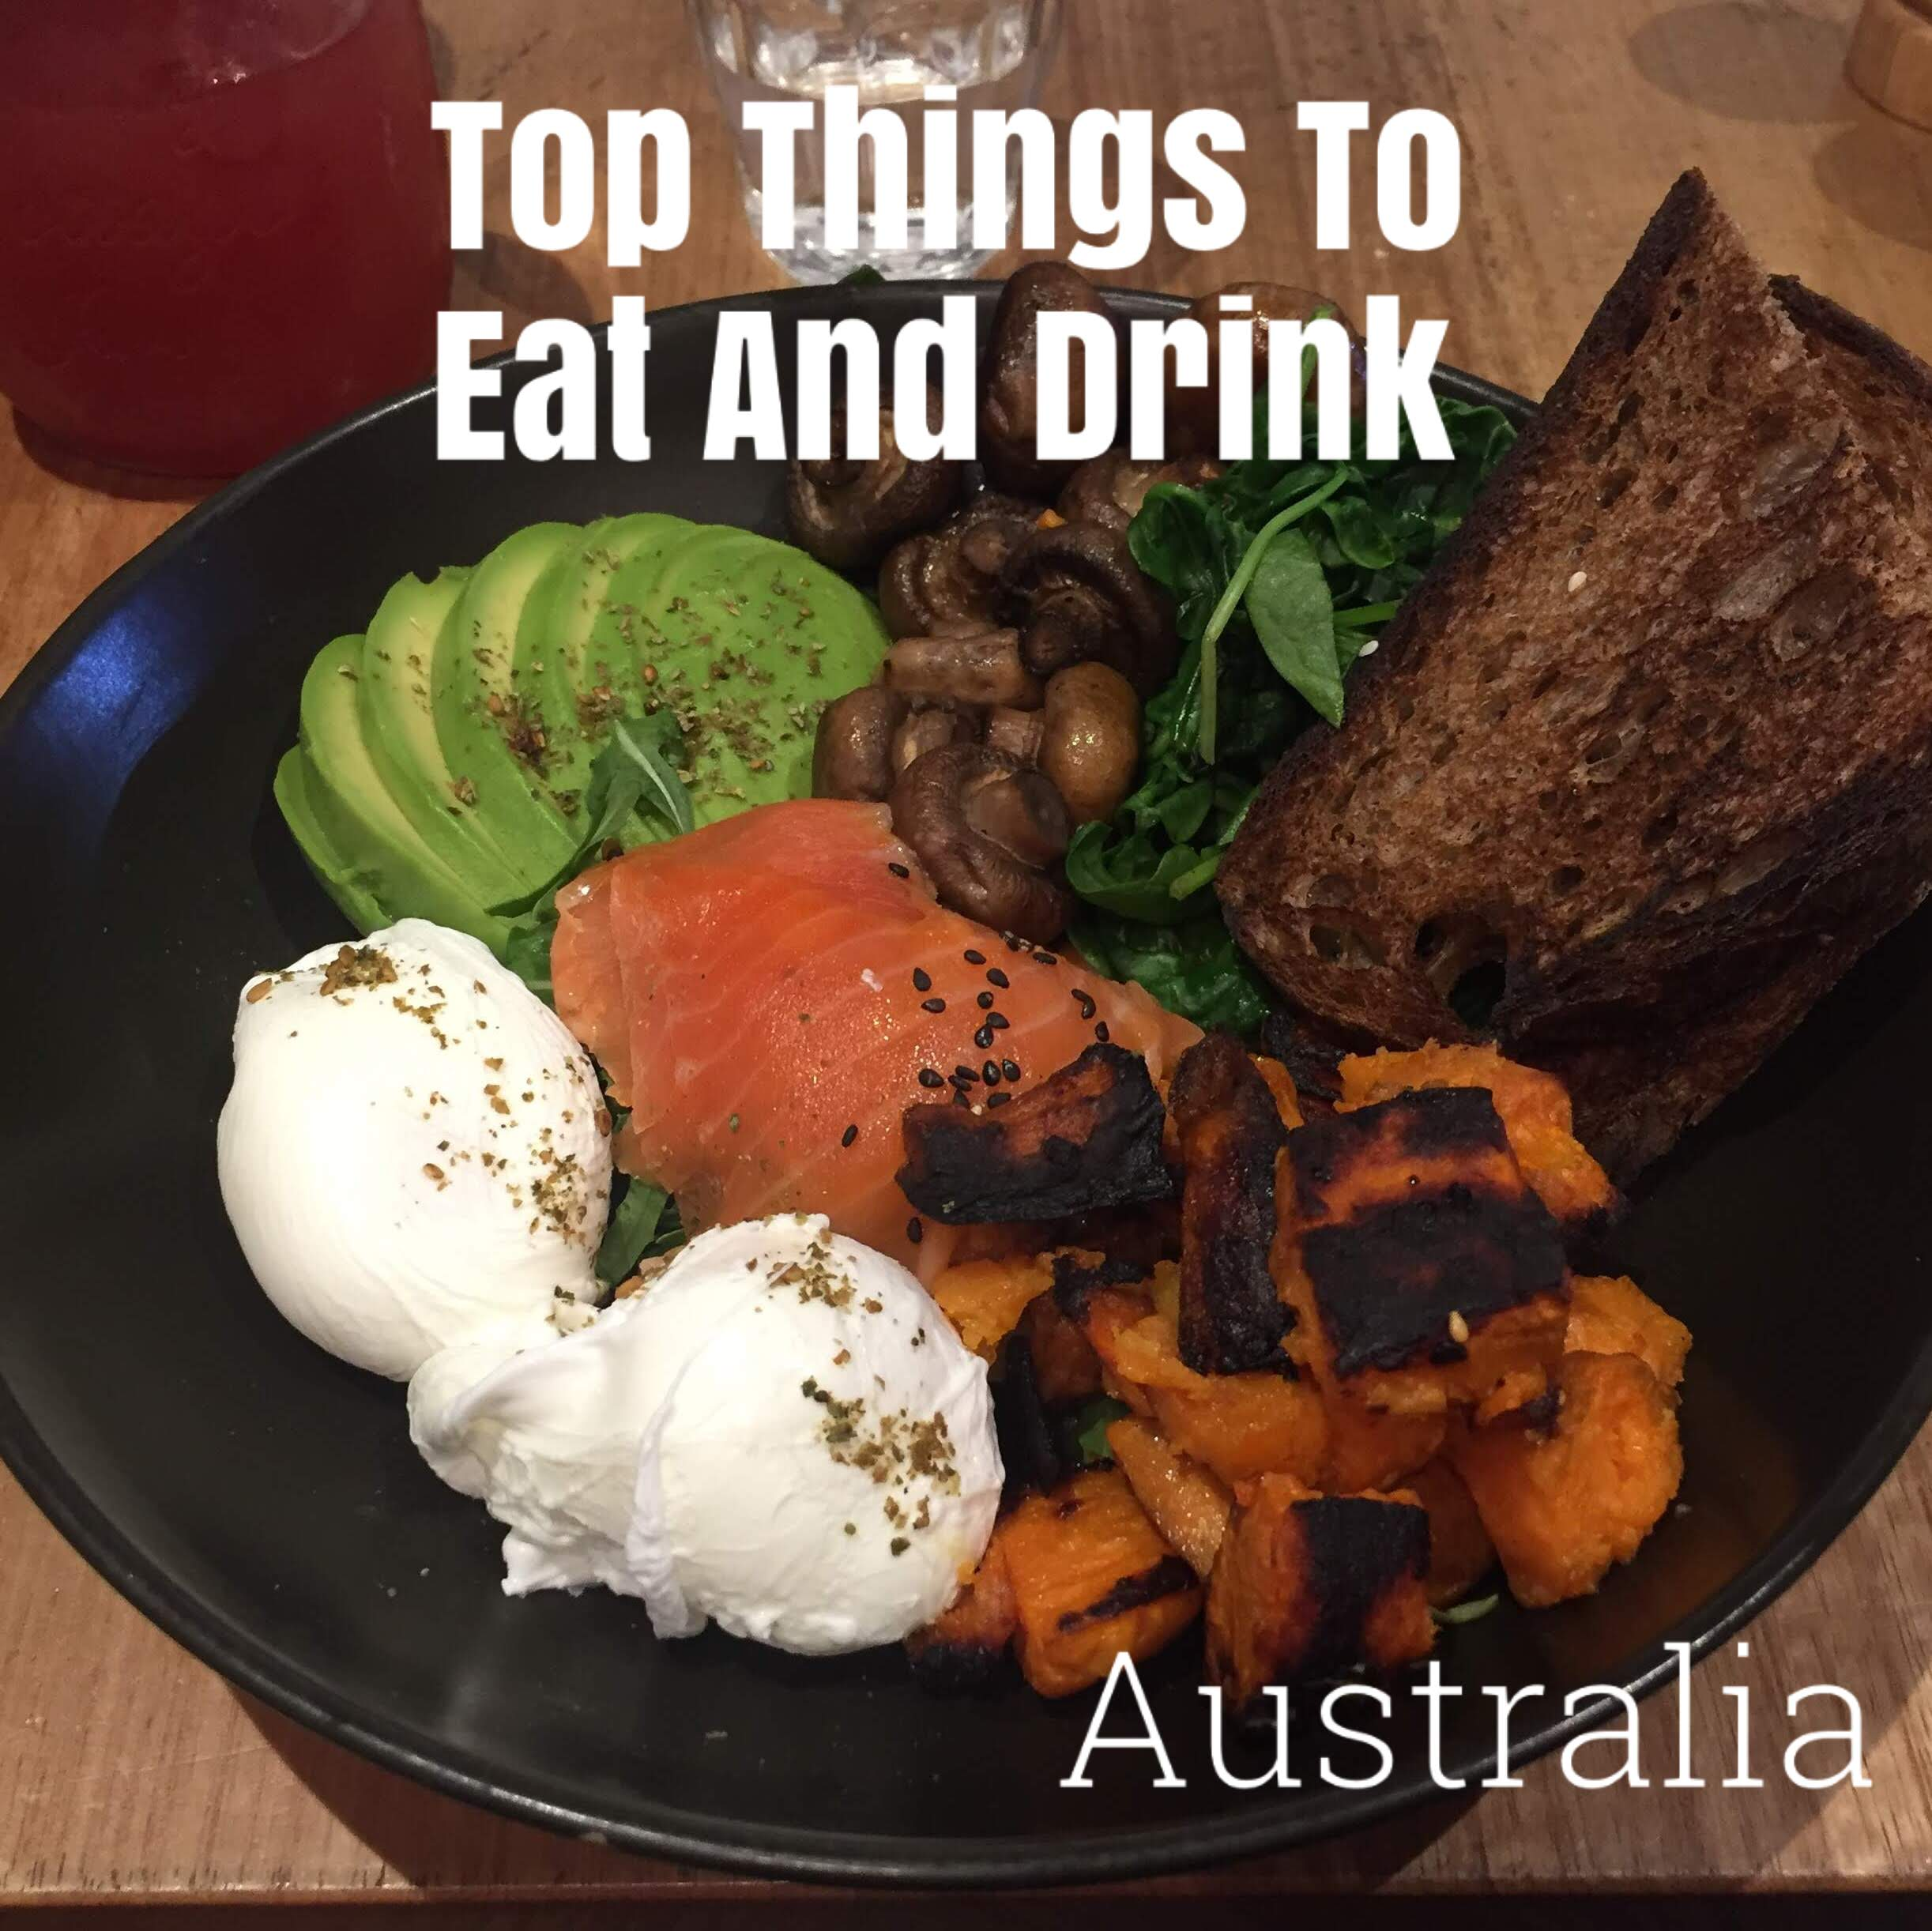 Top Things To Eat and Drink, Australia,